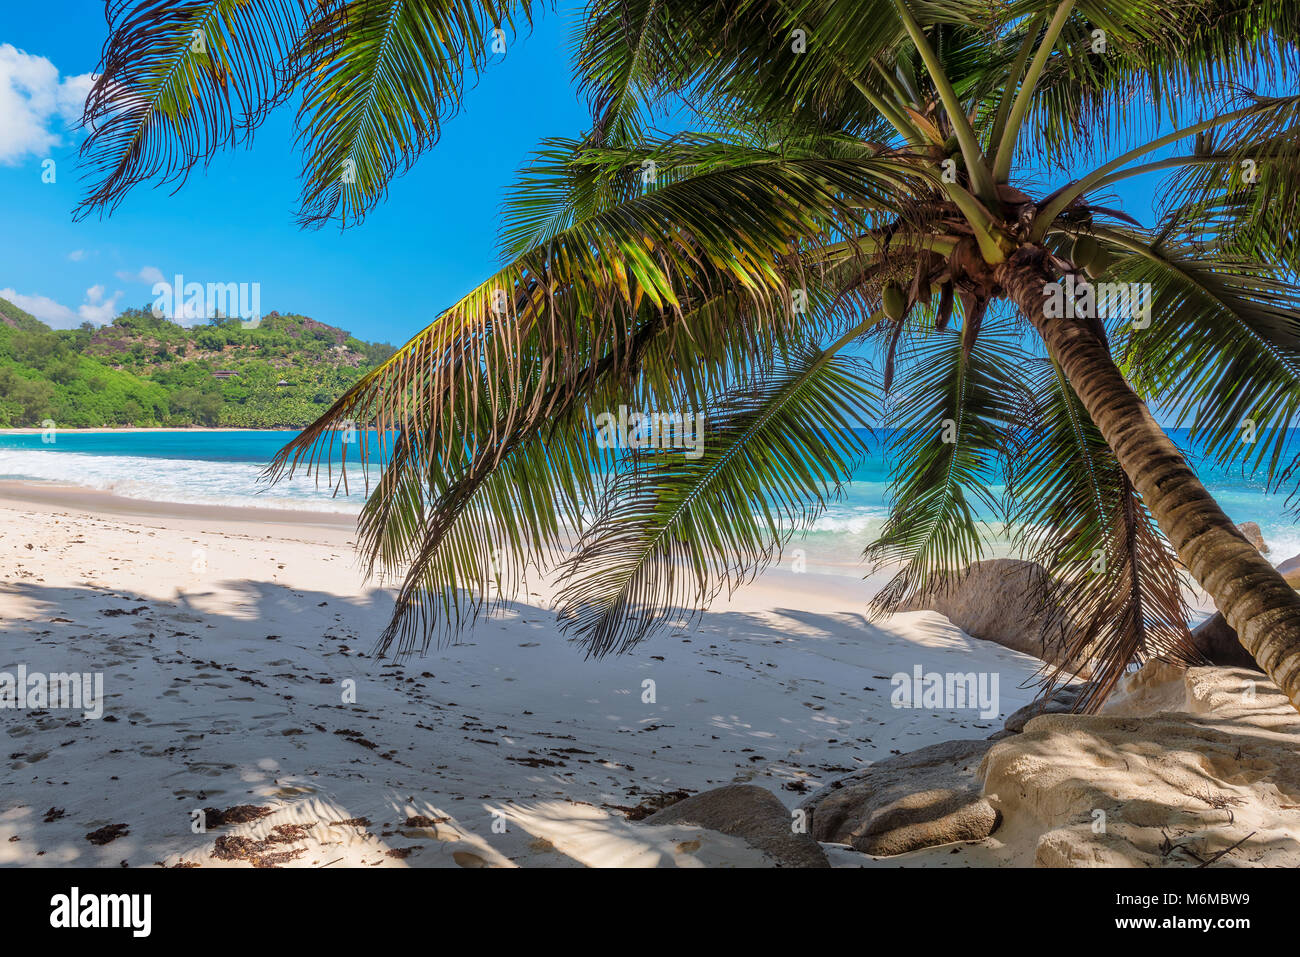 Tropical beach - Stock Image